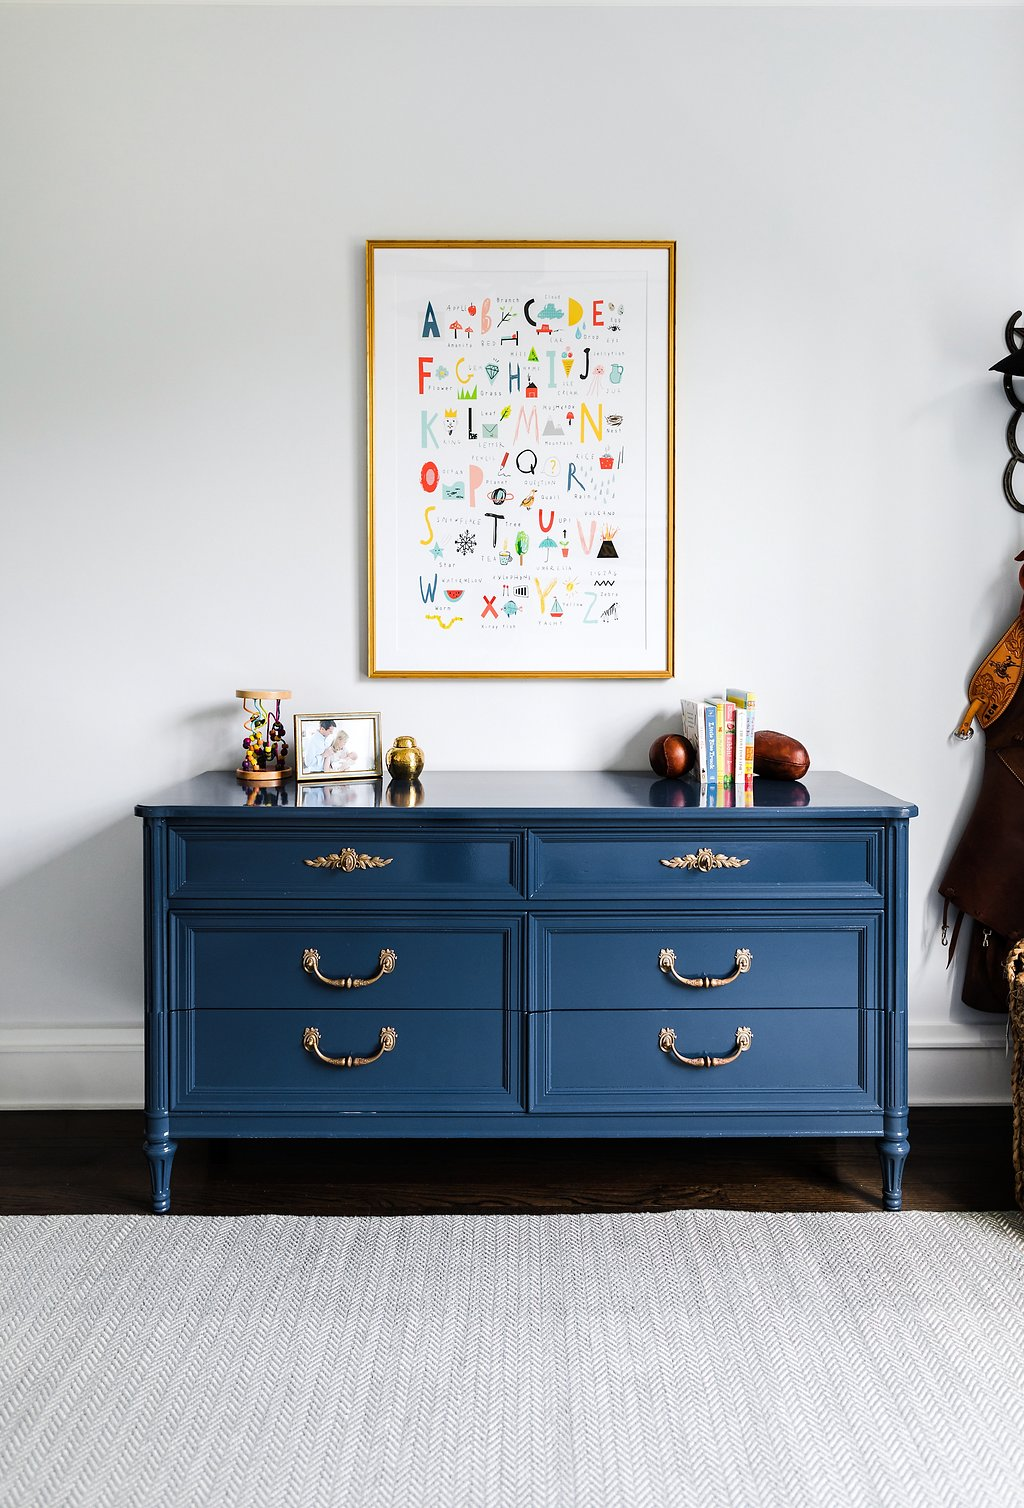 Shown above is a custom painted vintage dresser sourced at the CEH for Katie's client, Work of Katie Davis Design